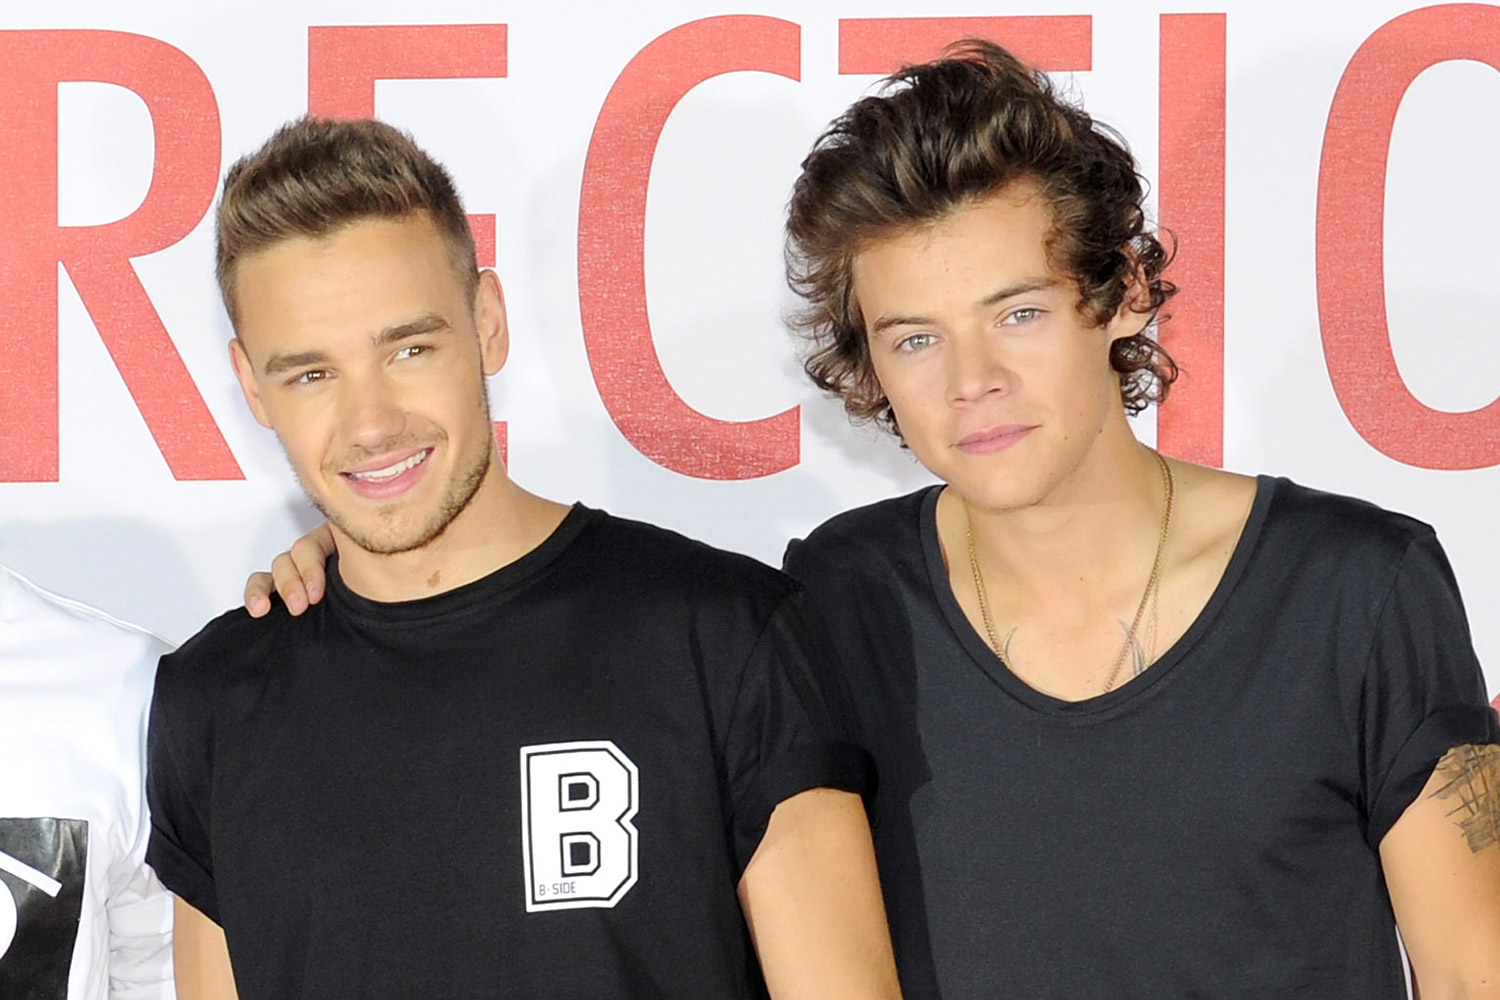 Liam Payne (L) and Harry Styles